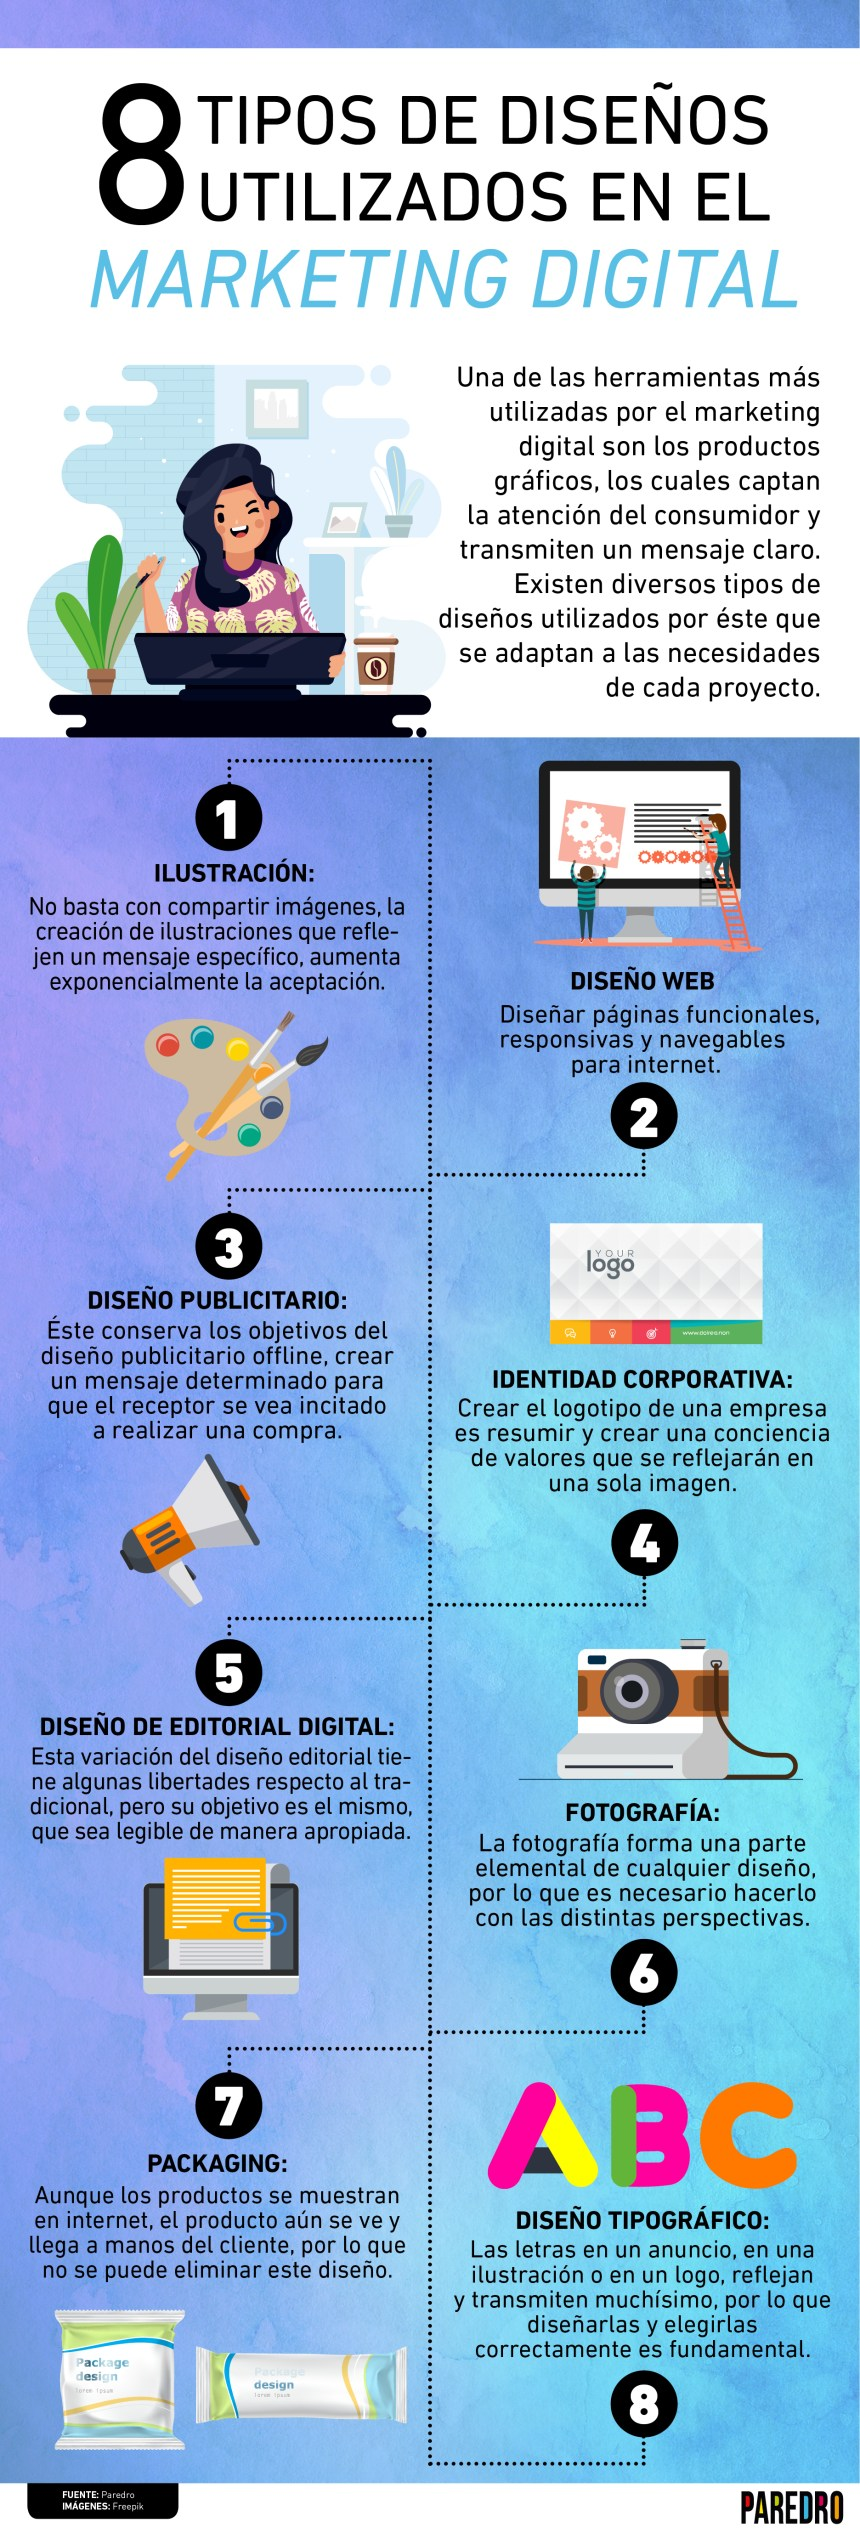 8 tipos de diseños utilizados en Marketing Digital